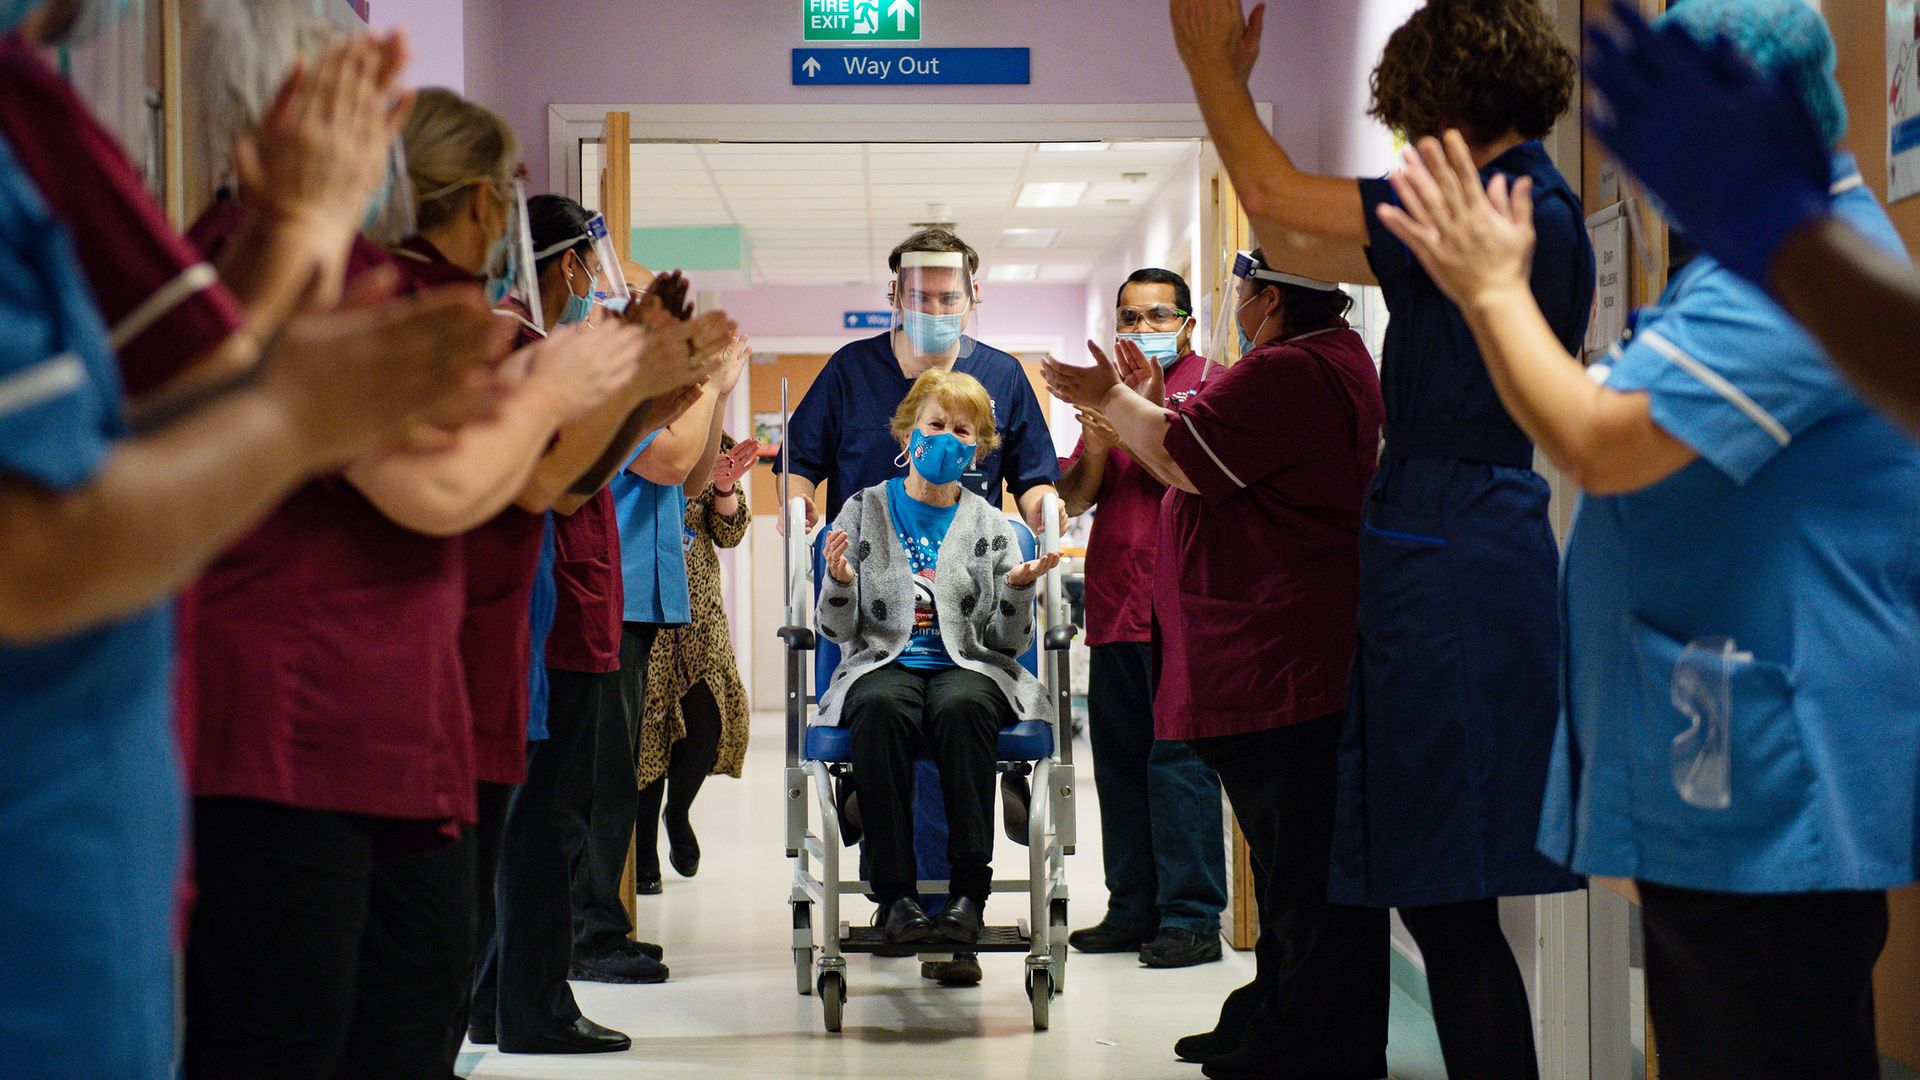 Margaret Keenan, 90, is applauded by staff as she returns to her ward after becoming the first person in the United Kingdom to receive the Pfizer/BioNtech covid-19 vaccine at University Hospital, Coventry, at the start of the largest ever immunisation programme in the UK's history. - Credit: PA